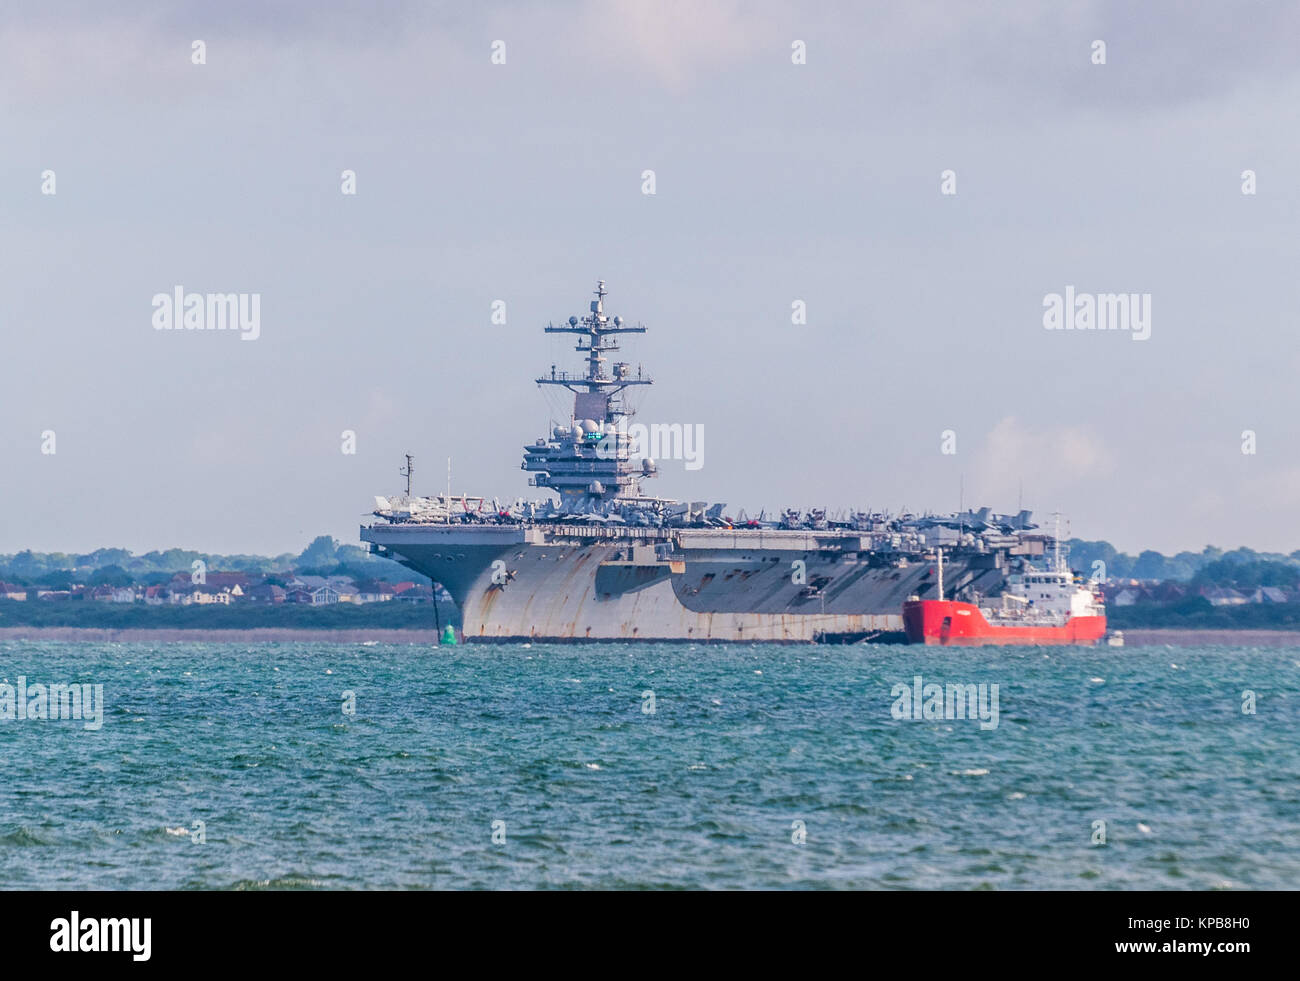 American aircraft carrier, USS George HW Bush visiting Portsmouth, anchored in The Solent at Stokes Bay, near Gosport - Stock Image